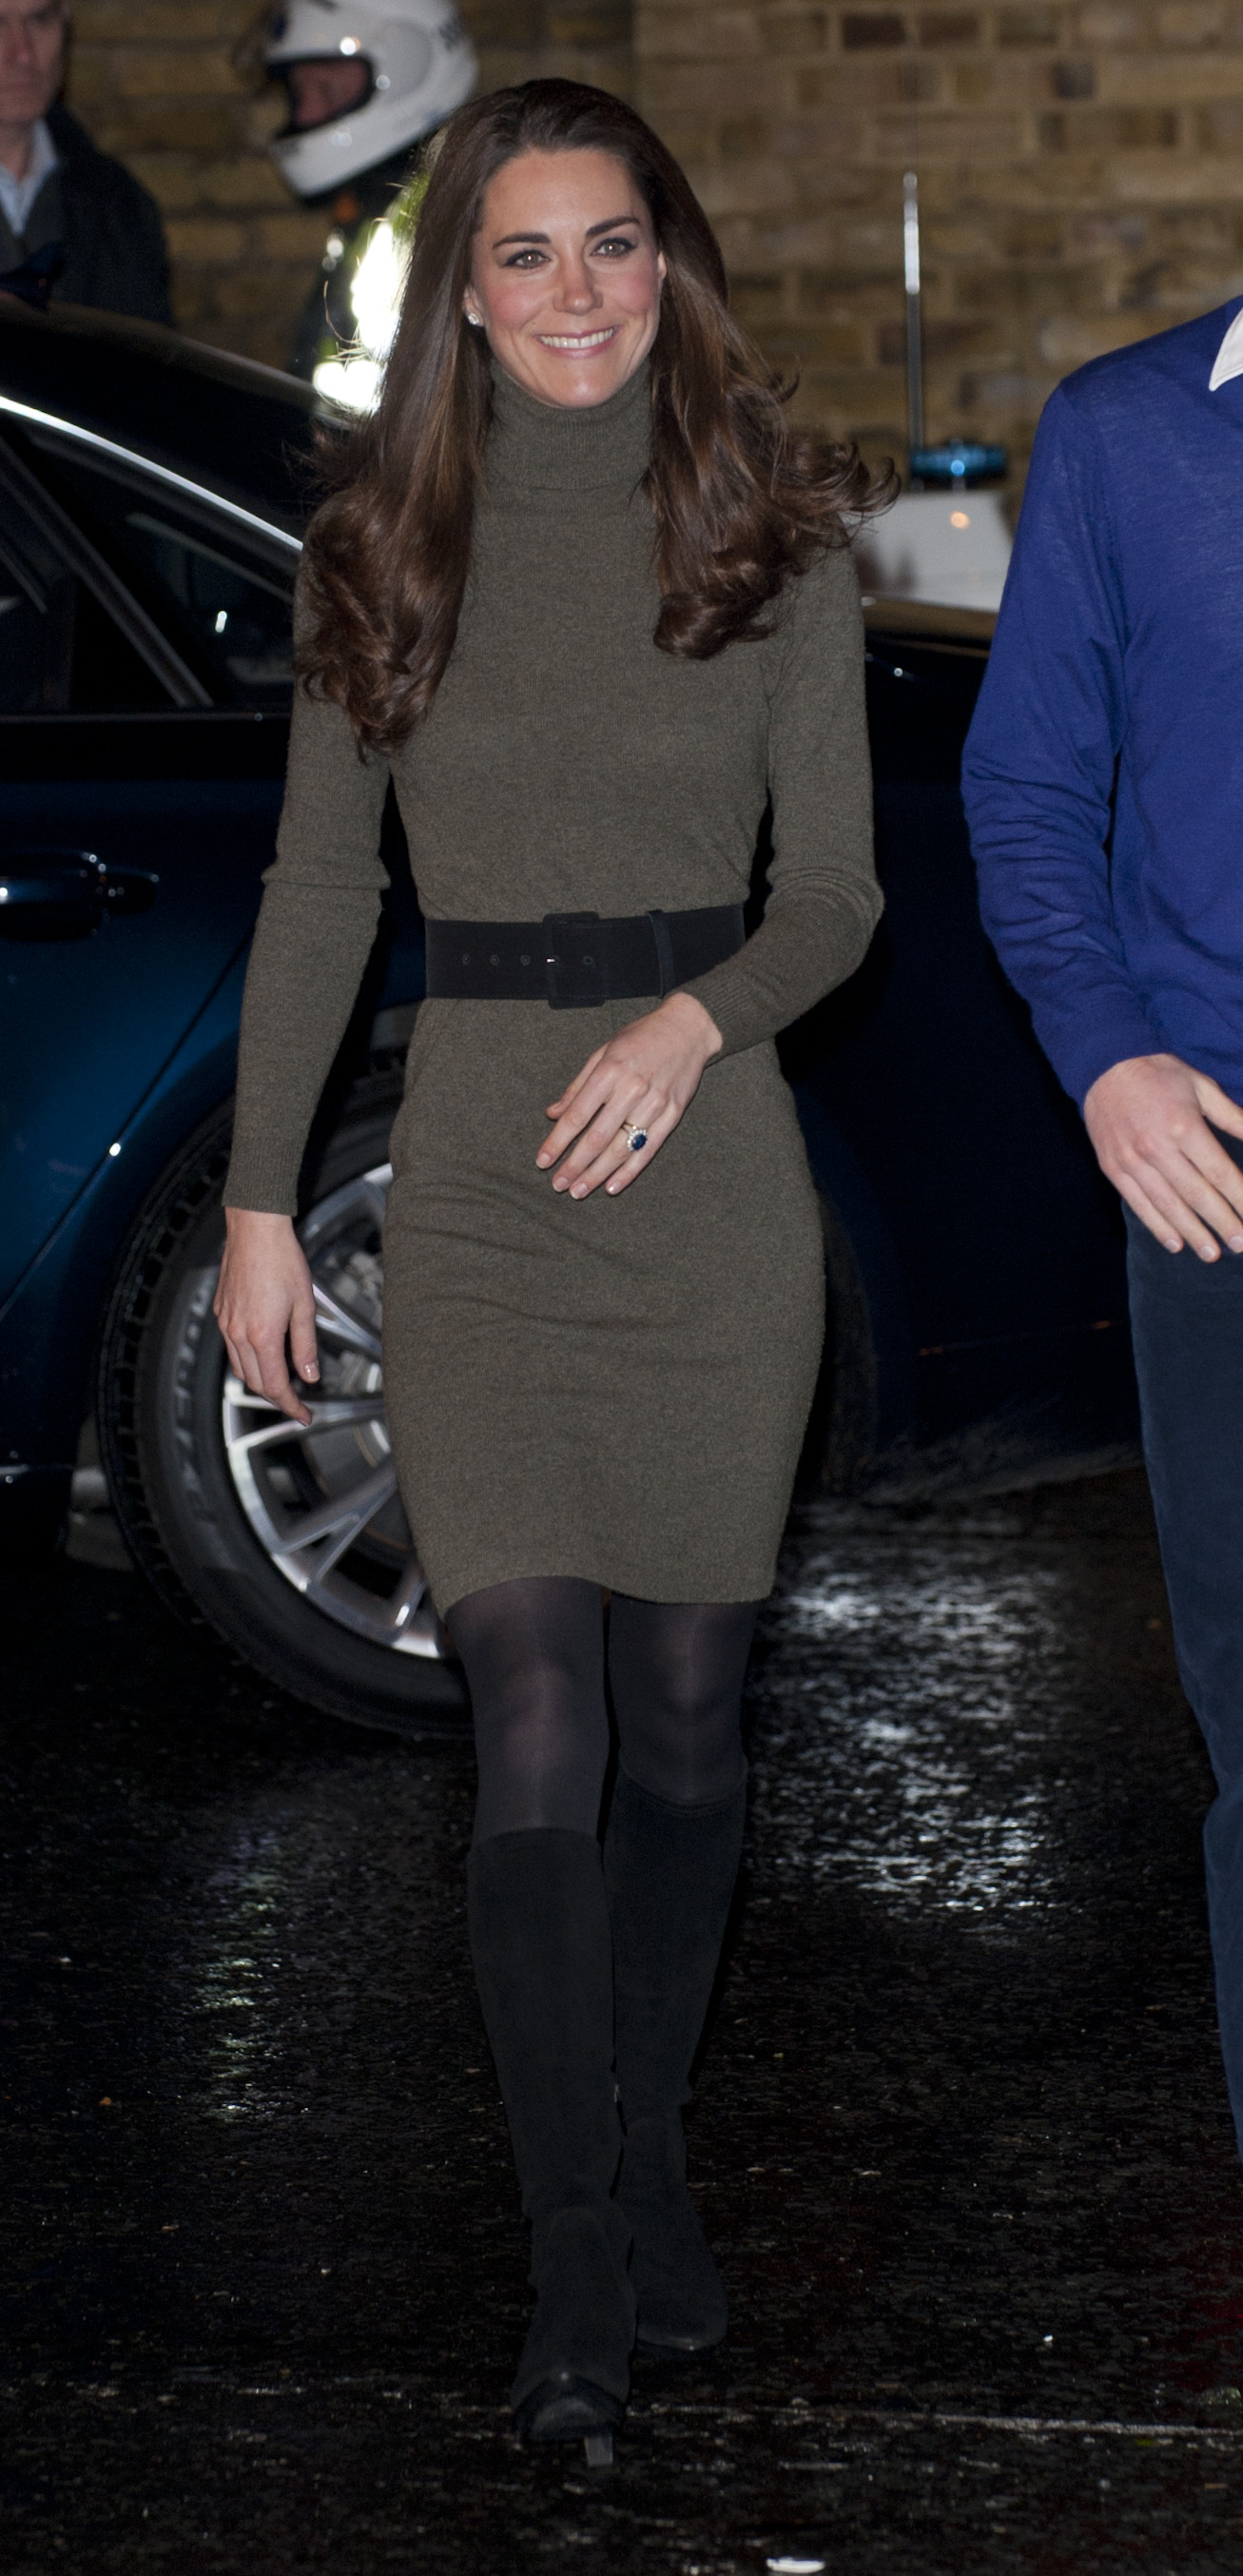 <strong>Classic Americana</strong>                                   Middleton visited Centrepoint, a homeless youth center in London, on Dec. 21, 2011 wearing a knit dress from Ralph Lauren's Blue Label line. On Jan. 5, 2012, the Duchess announced she would support various charities that work with youth, including East Anglia's Children's Hospices and The Art Room.